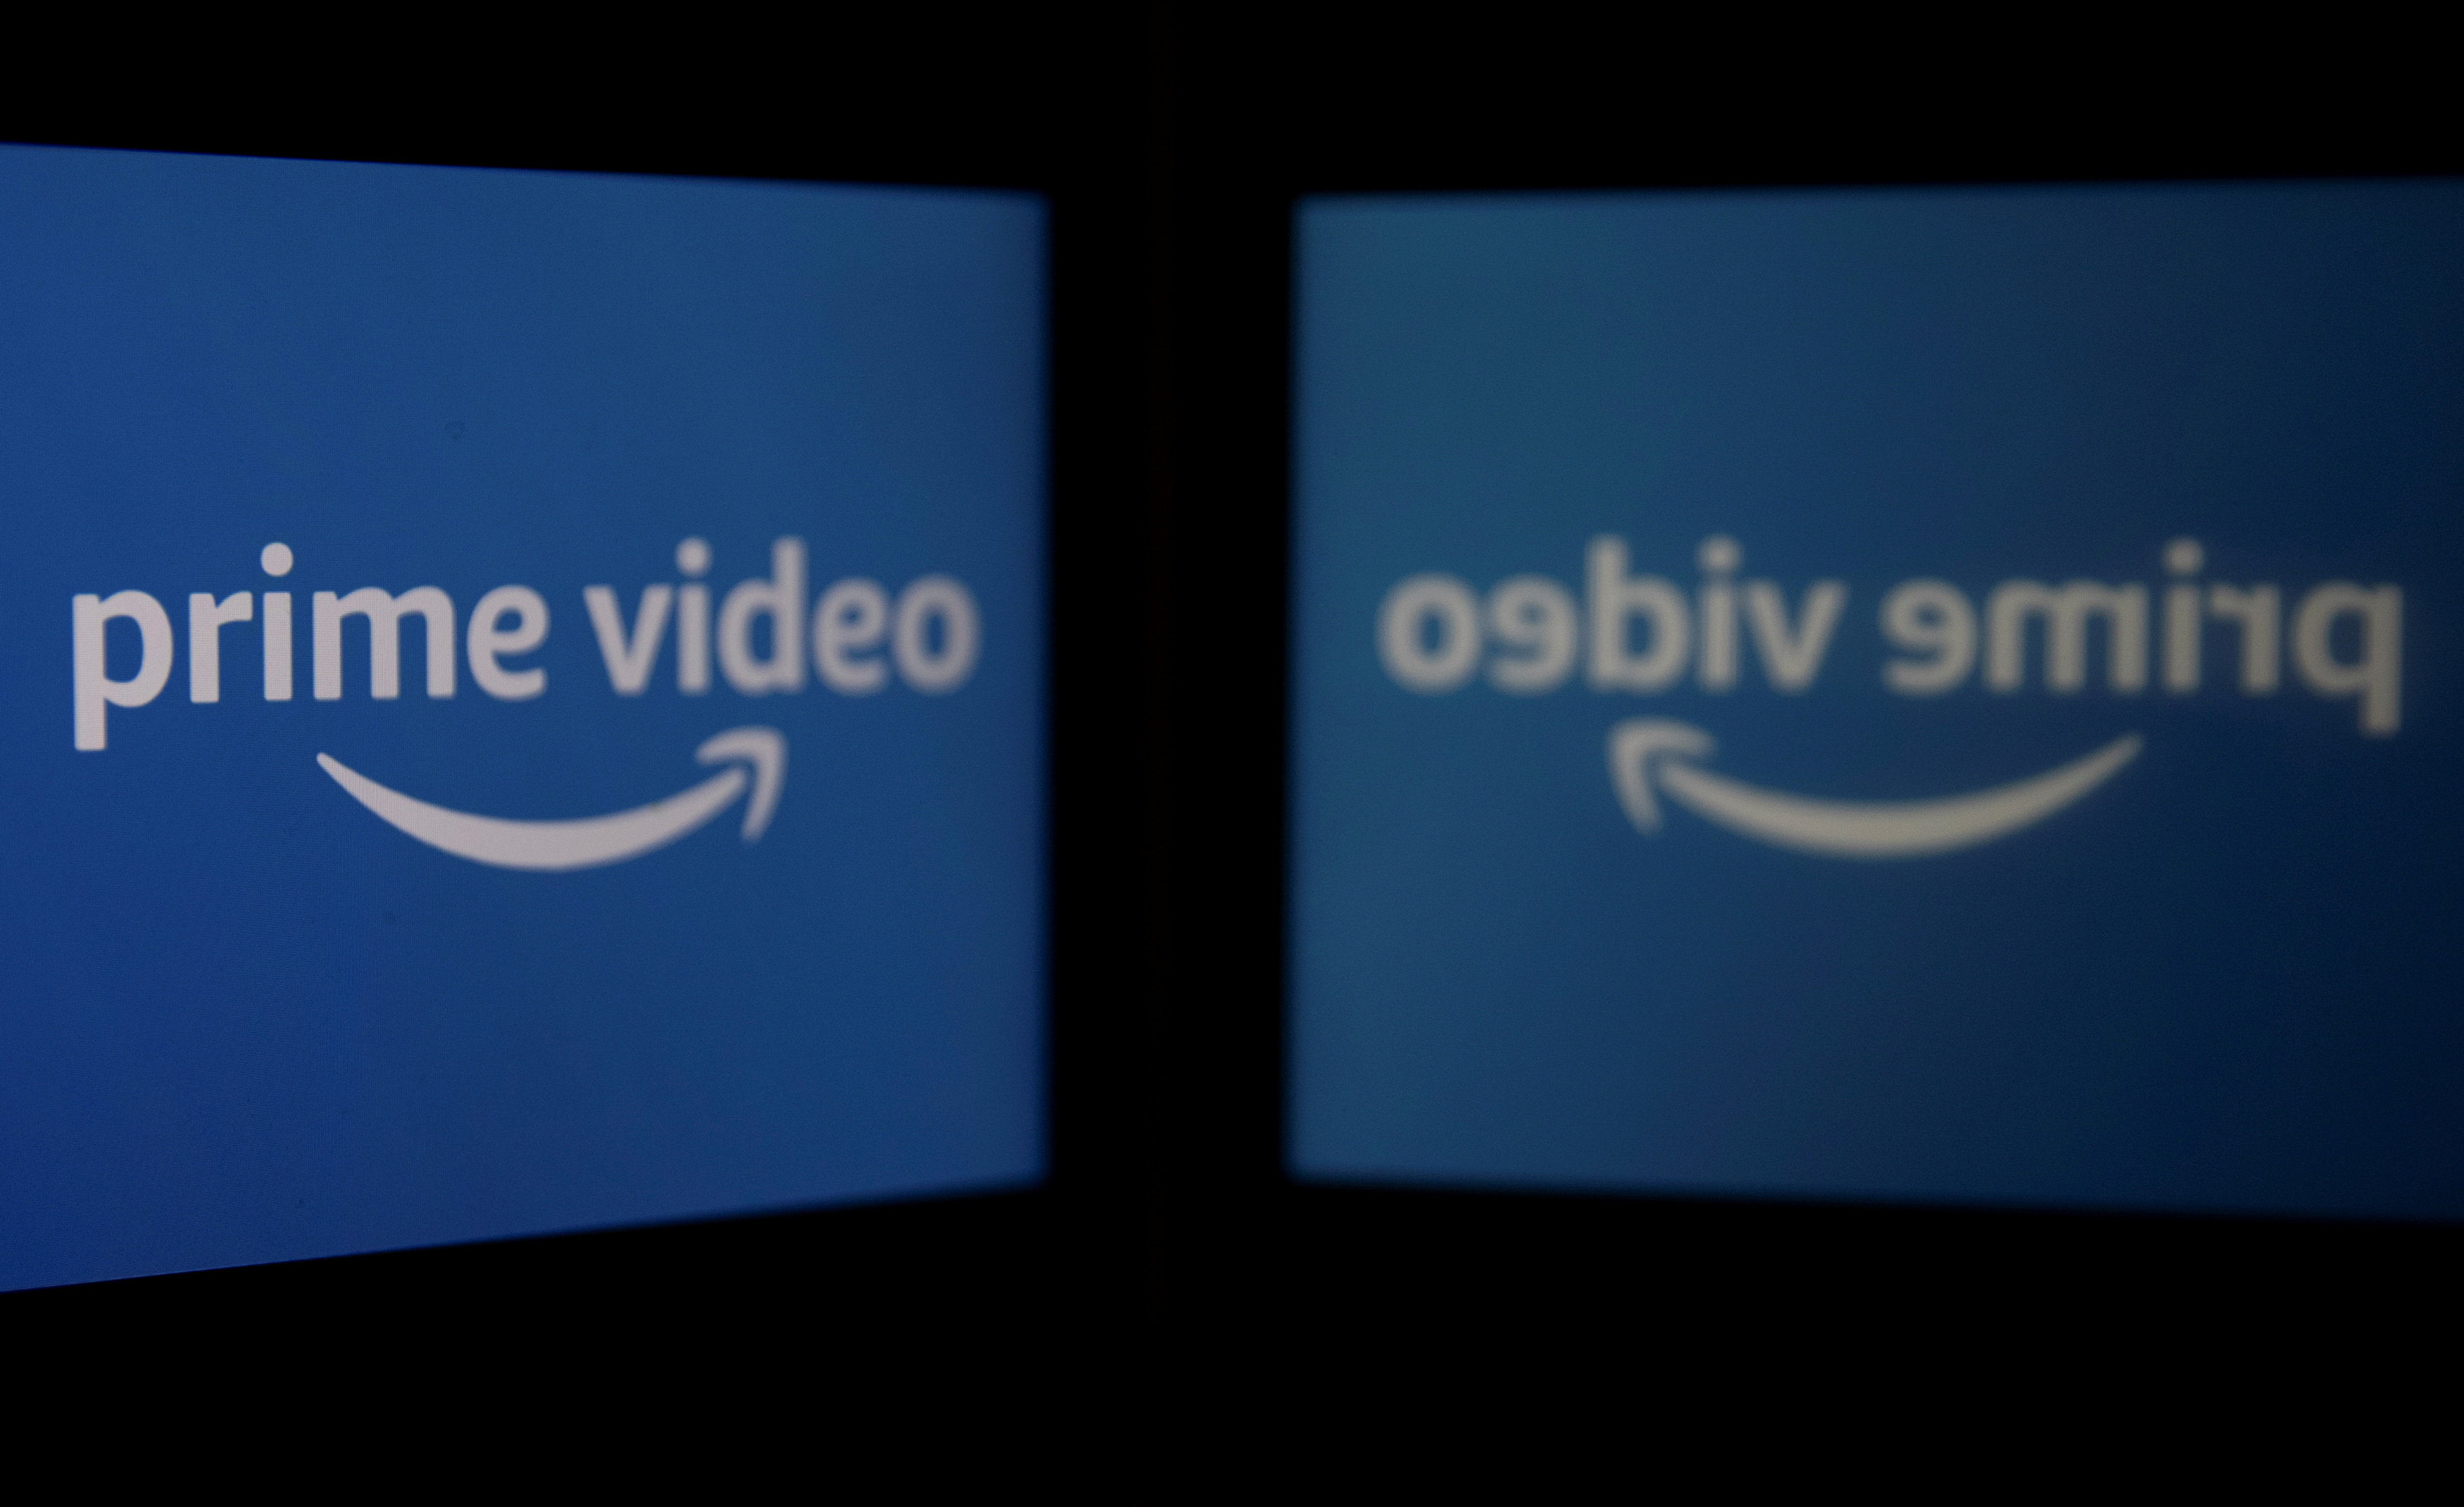 The logo of streaming service Amazon Prime Video is seen in this illustration picture taken March 5, 2021. REUTERS/Danish Siddiqui/Illustration/File Photo